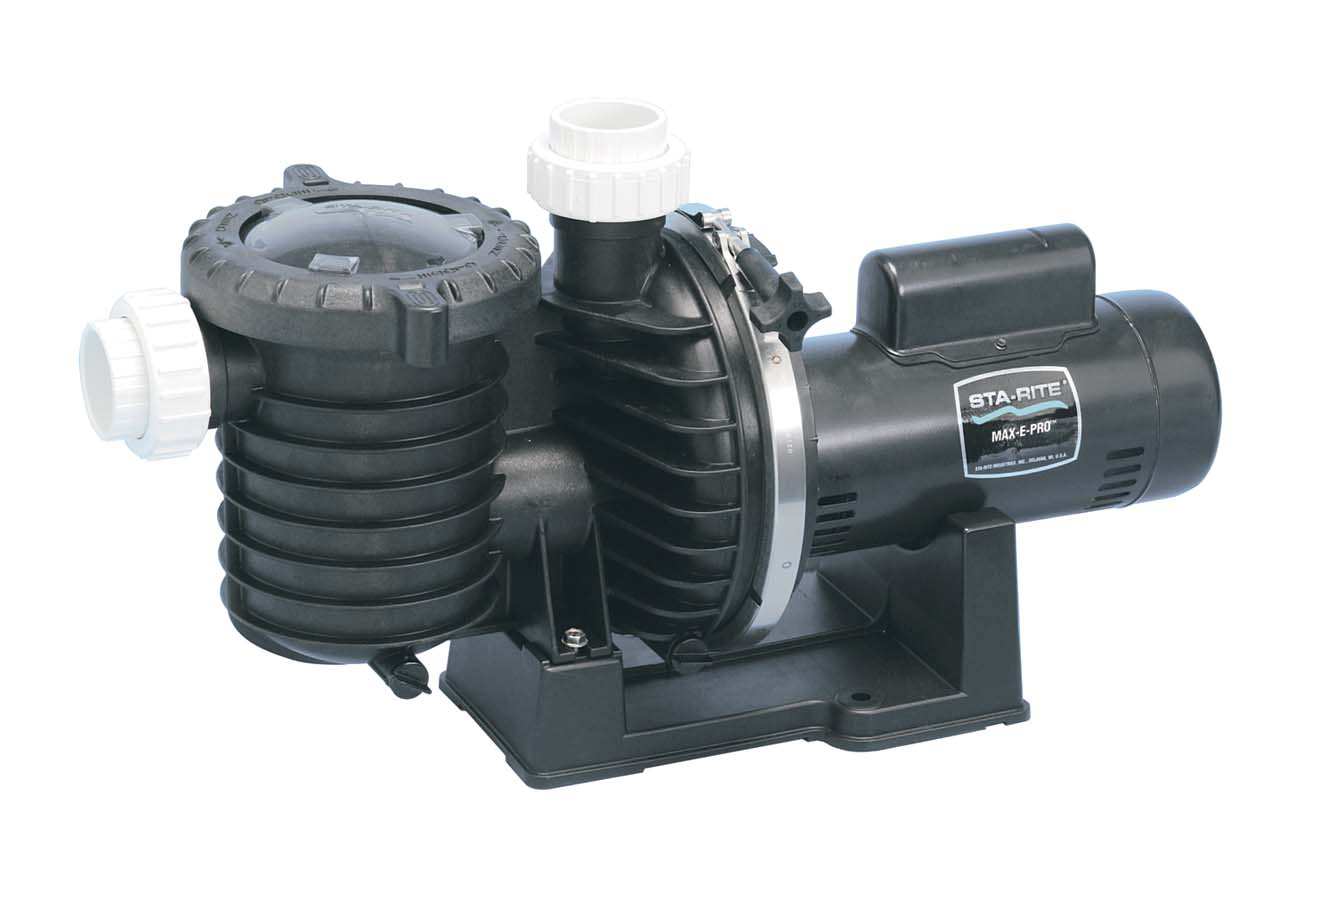 Sta-Rite Max-E-Pro Pool Pump 2-Speed 2HP